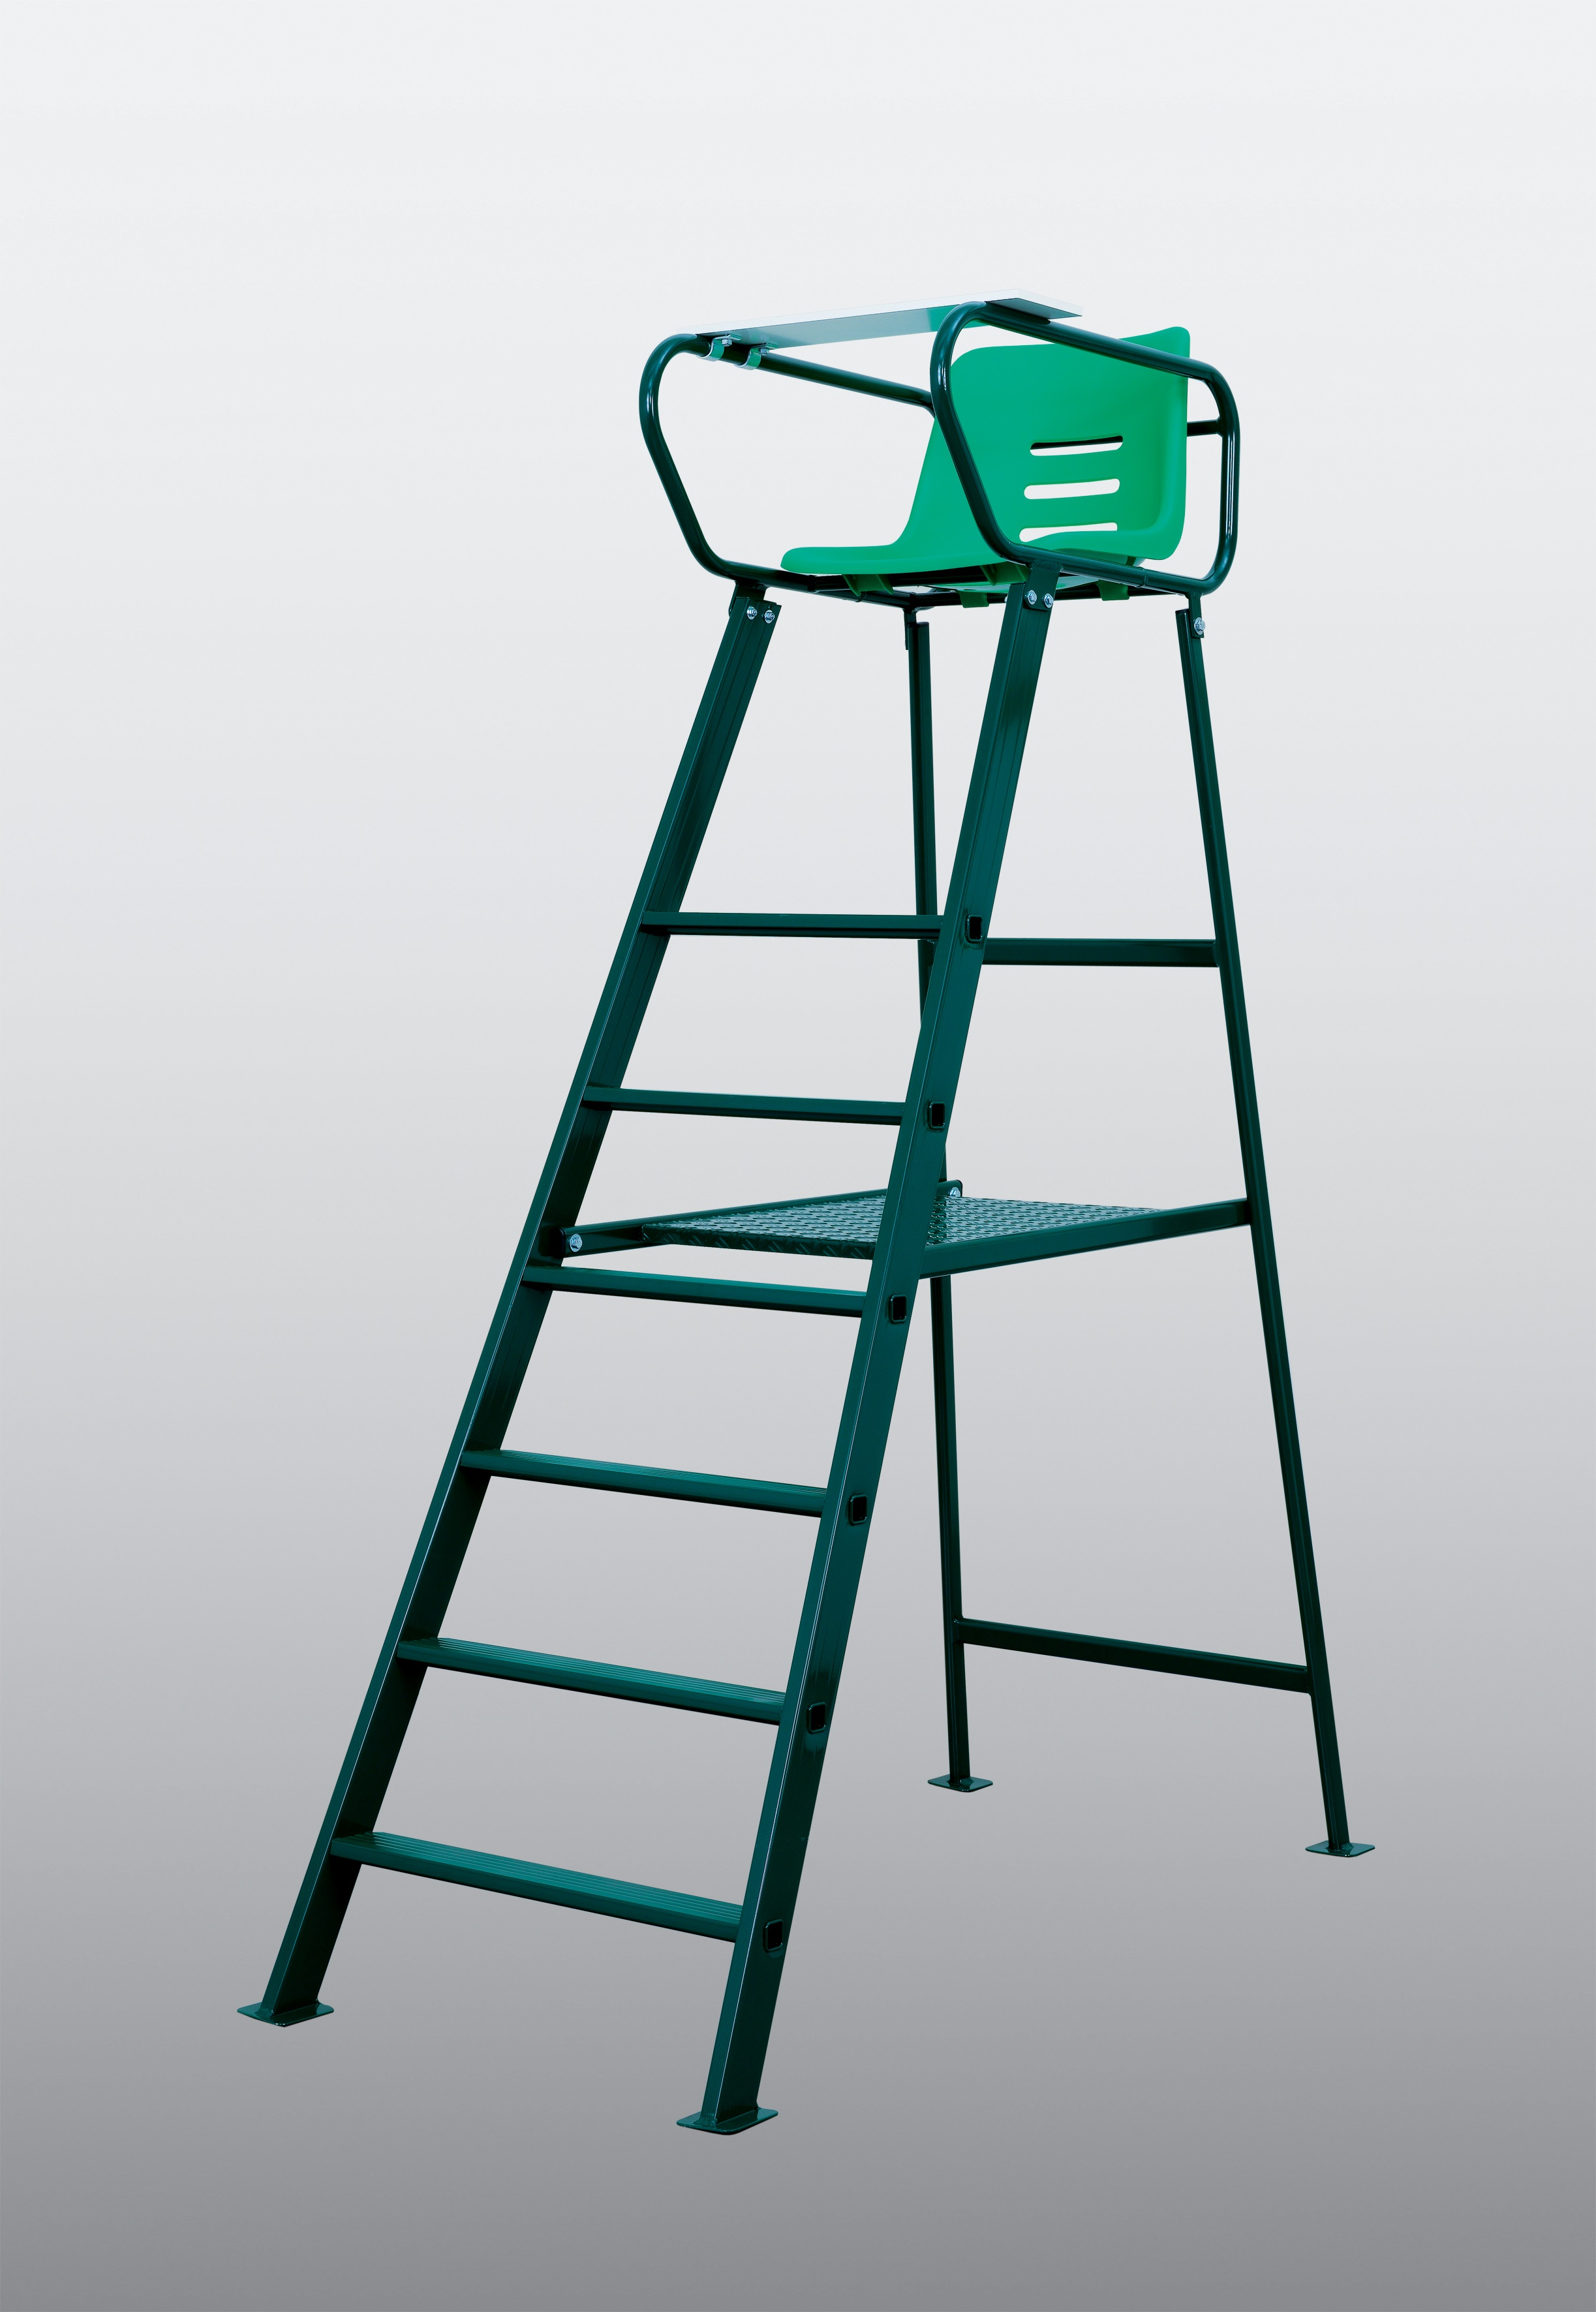 Wilson Pro Staff >> Royale Umpire Chair with Desk - Do It Tennis